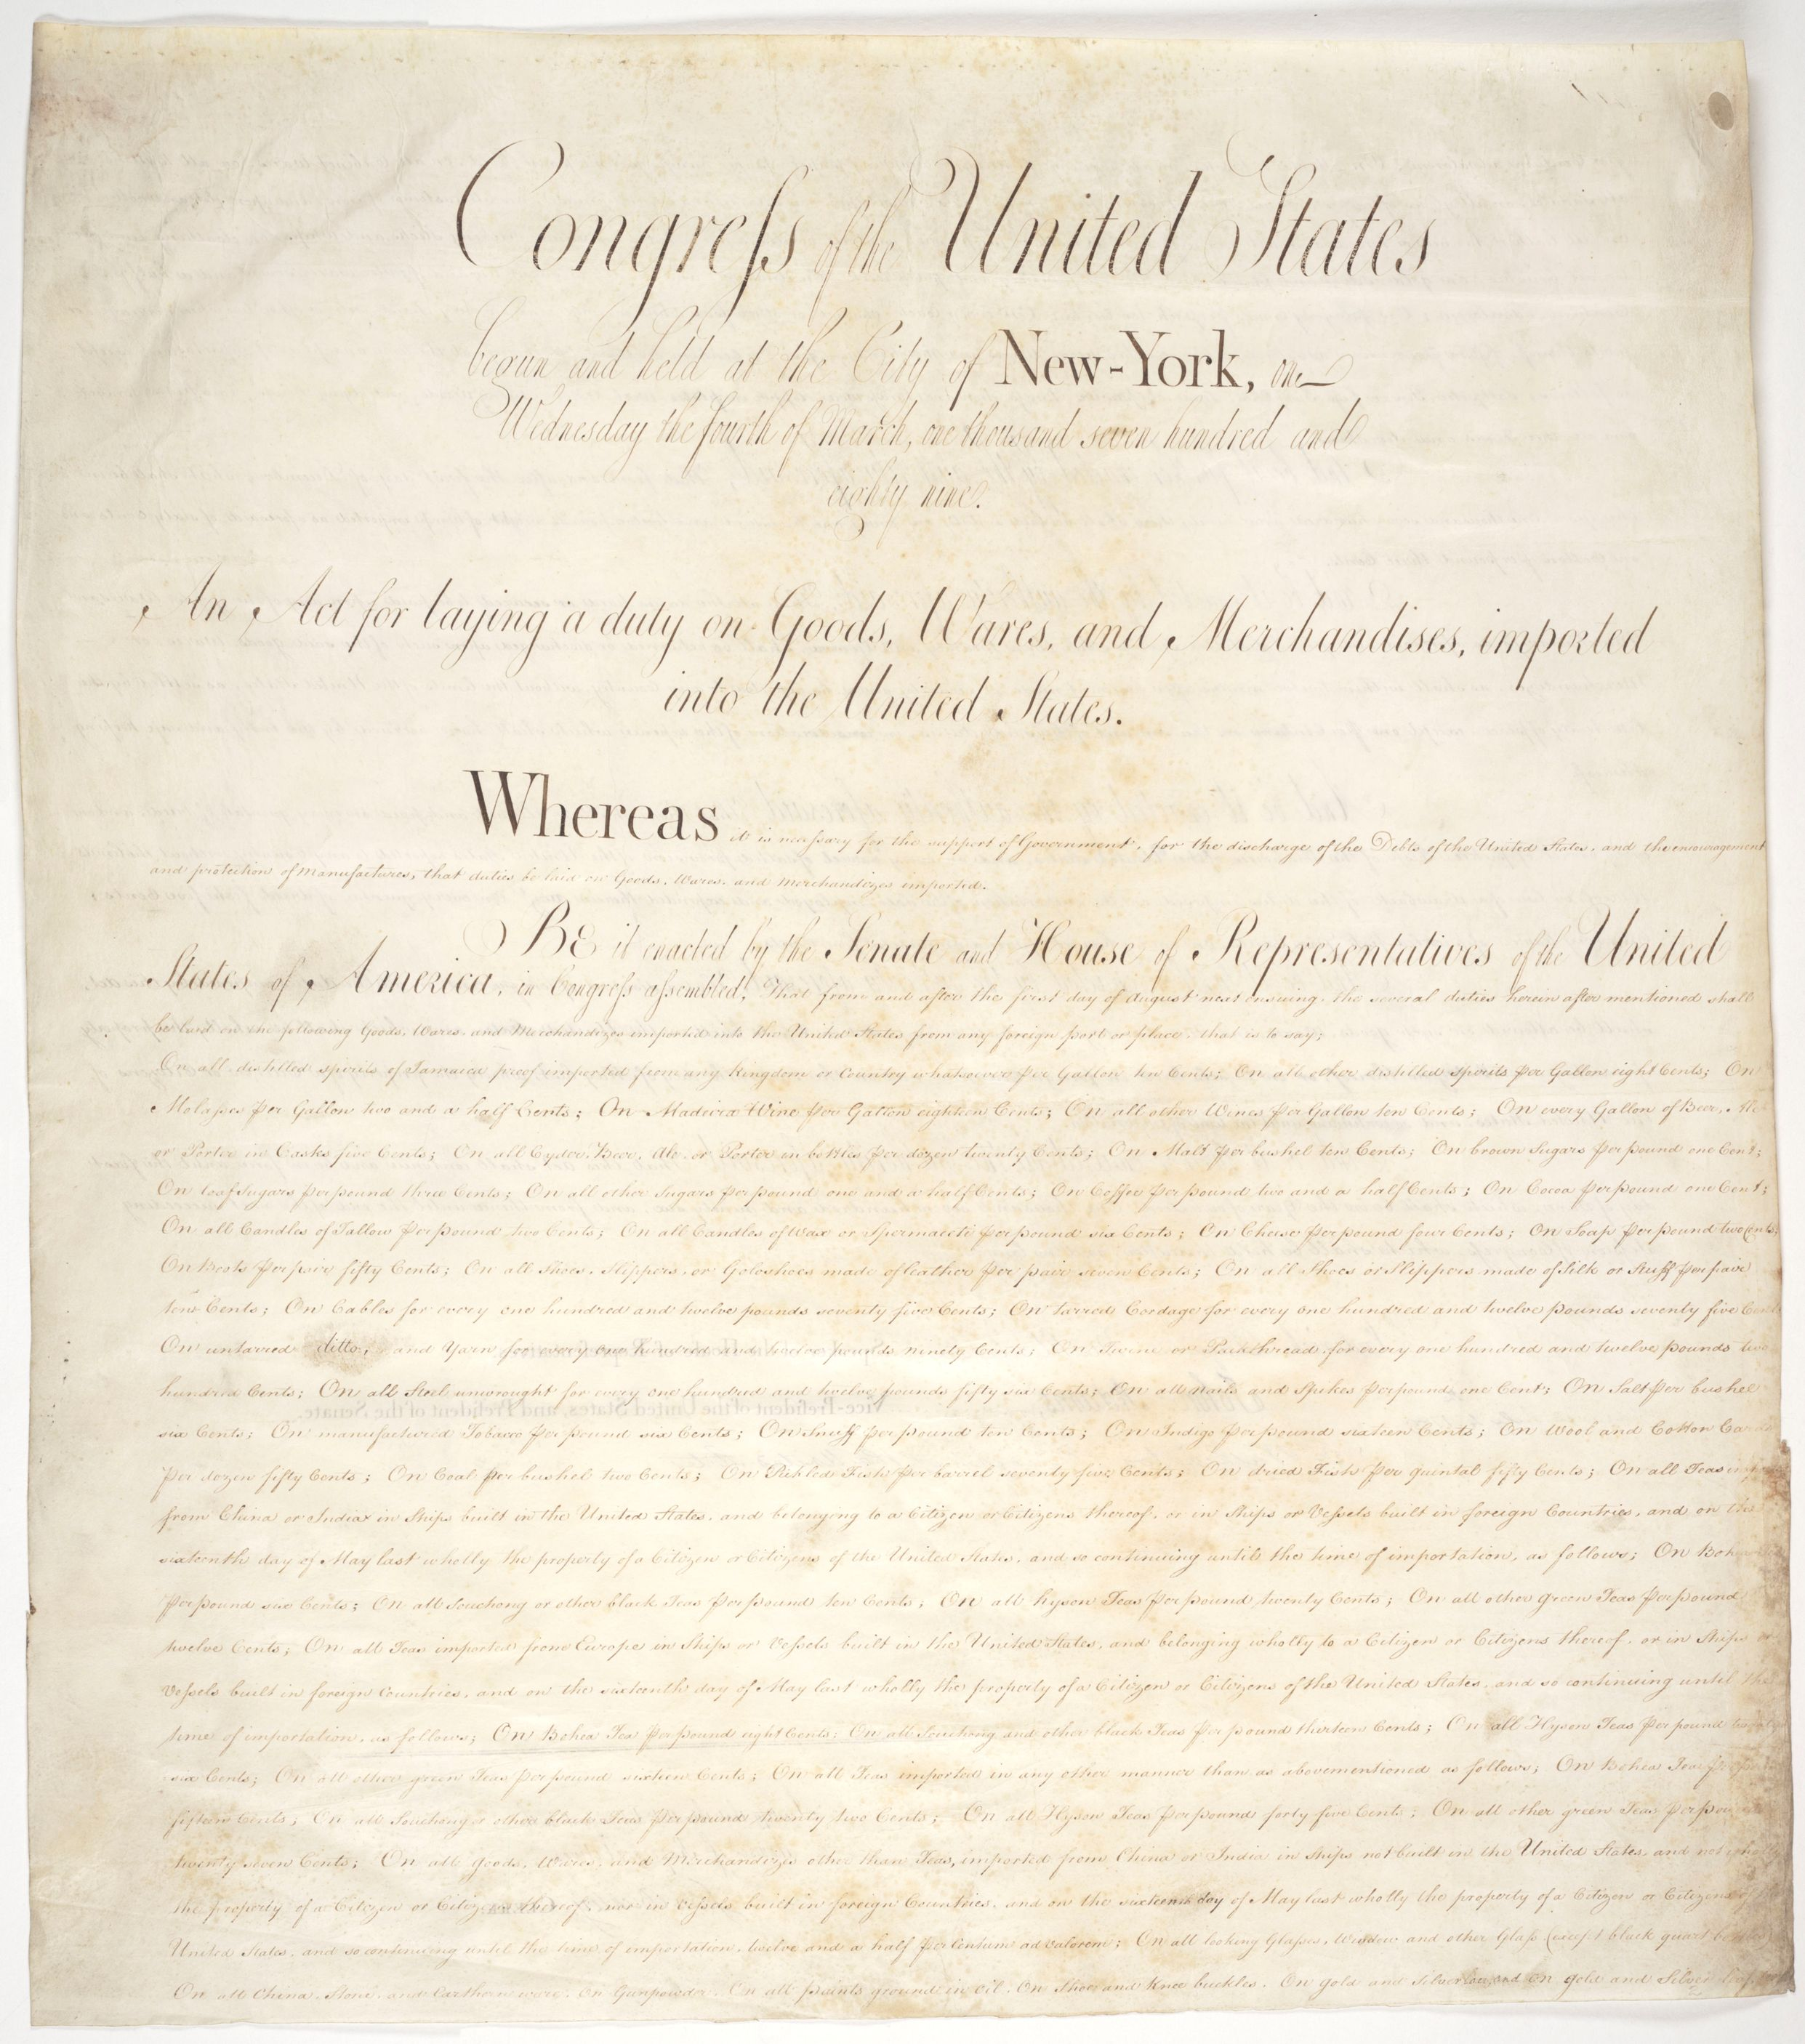 An Act for Laying a Duty on Goods, Wares, and Merchandises imported into the United States